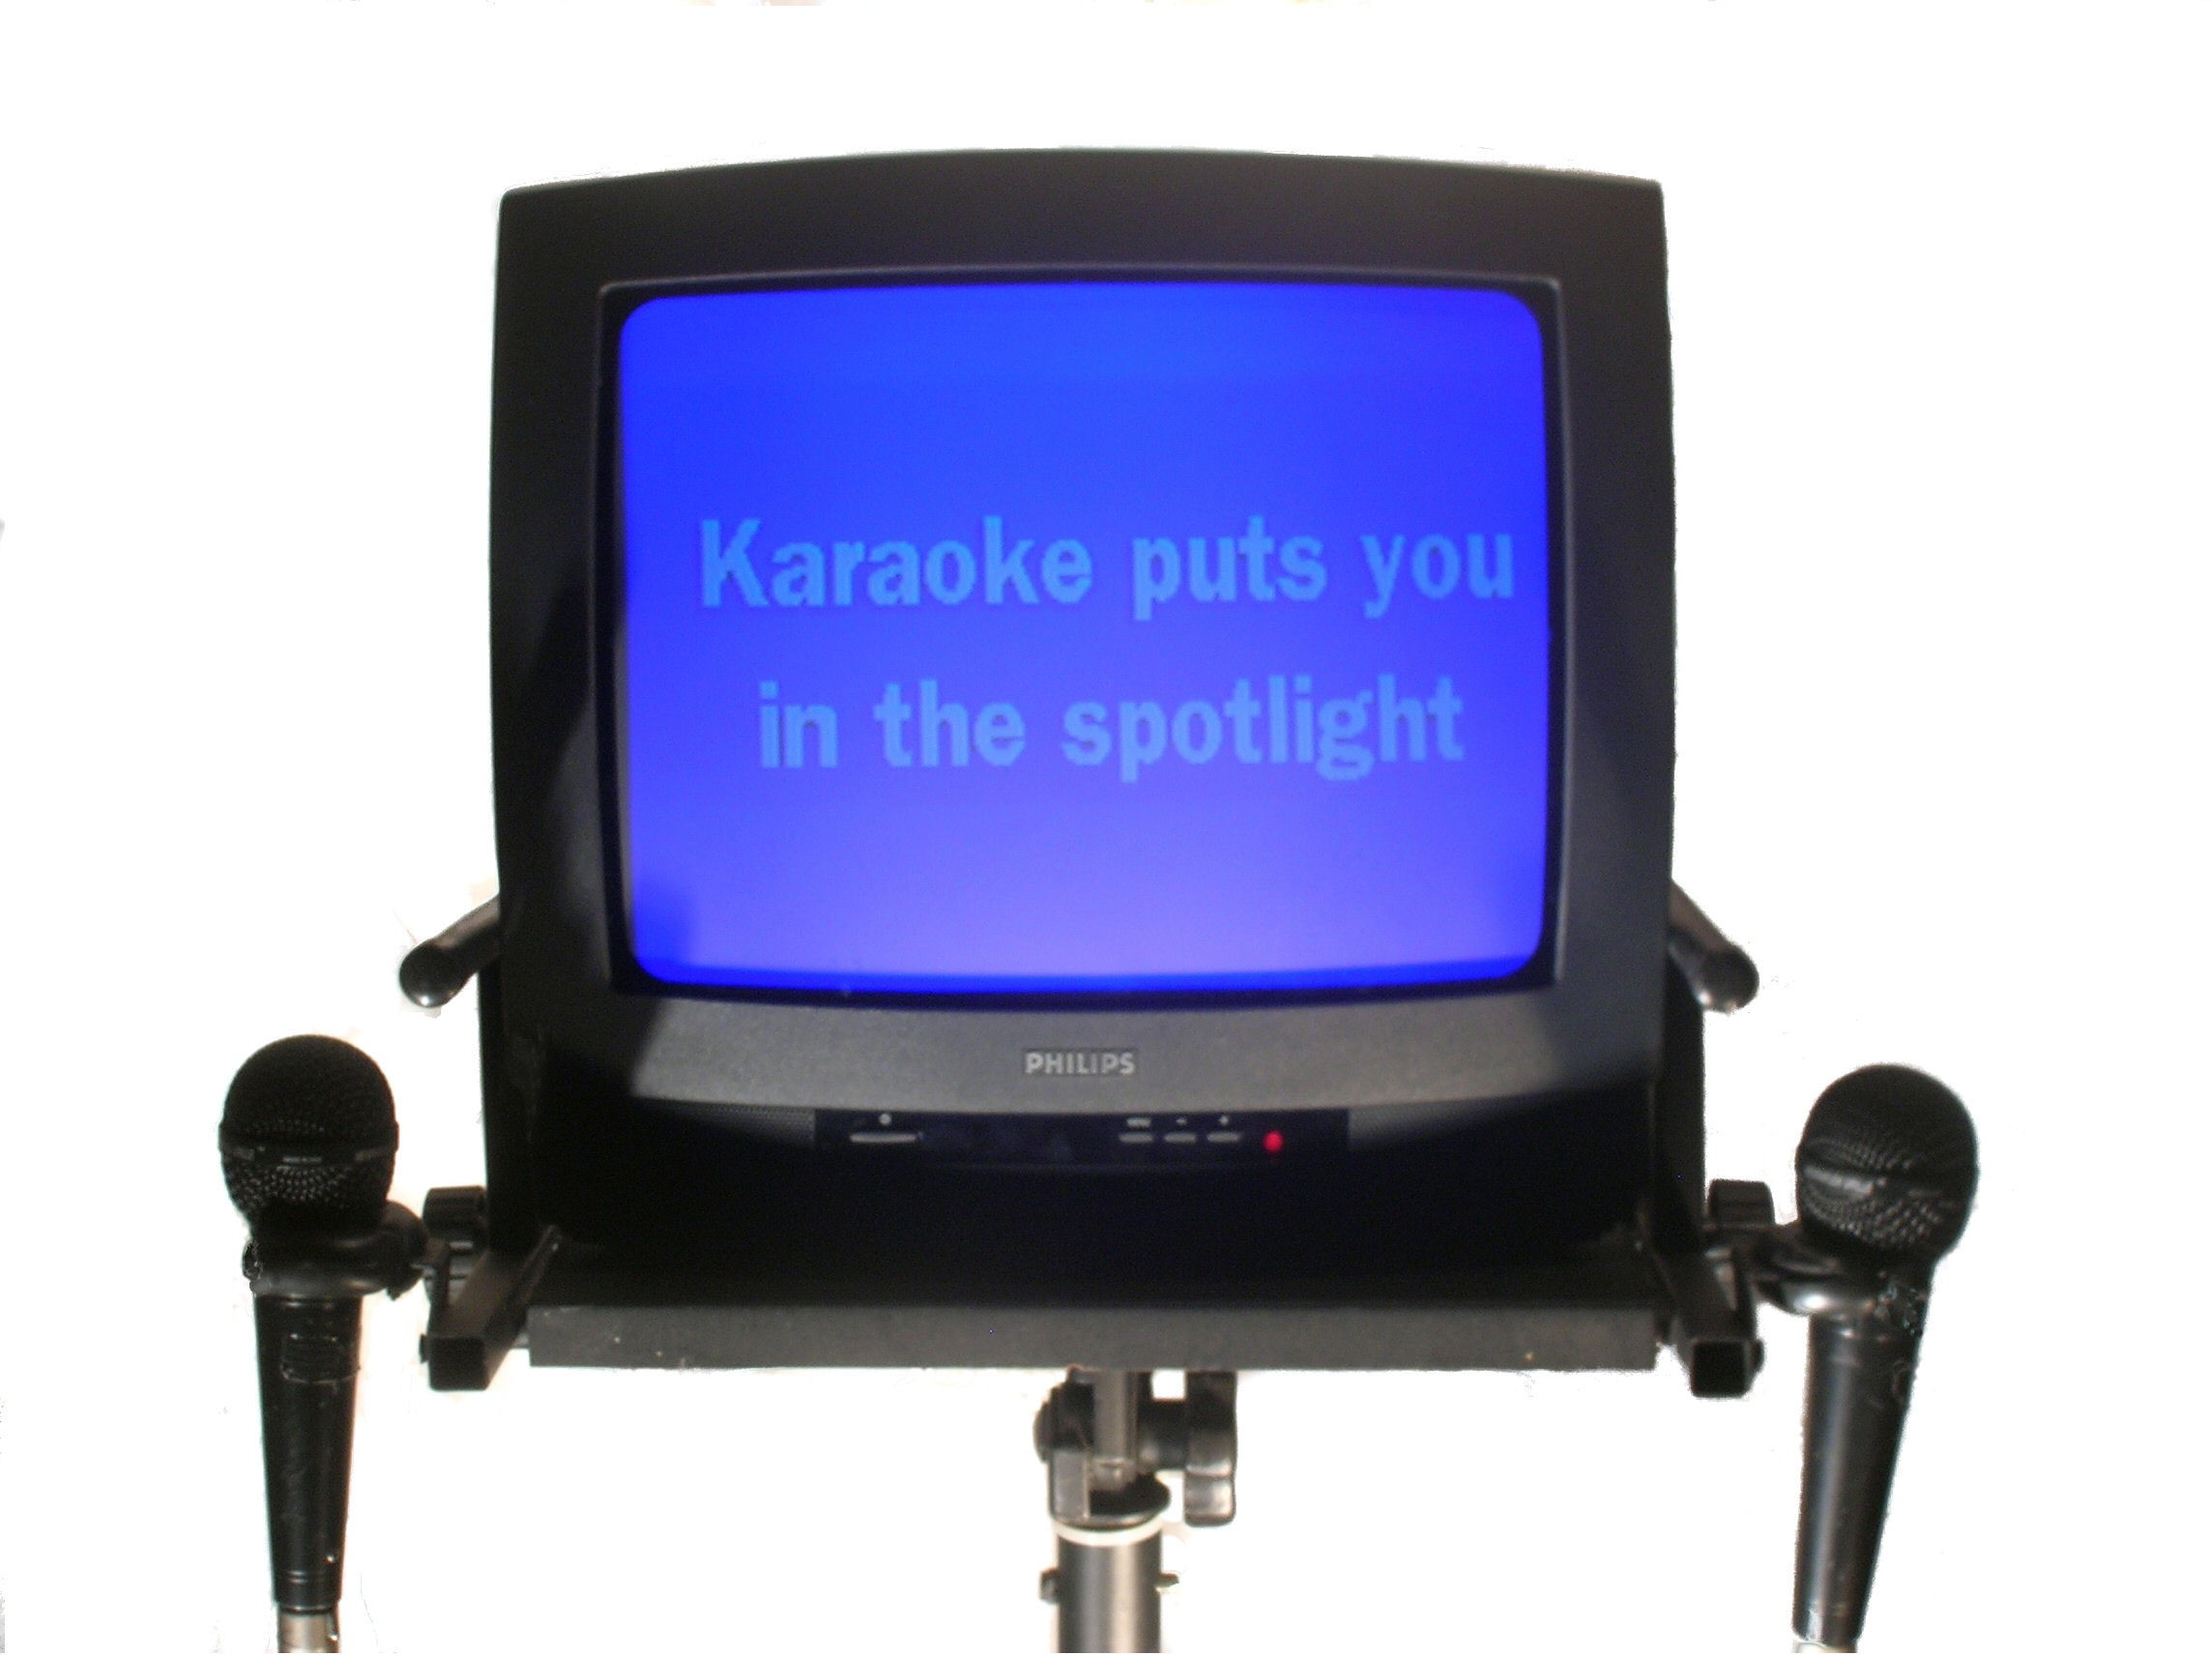 Karaoke Hire Equipment